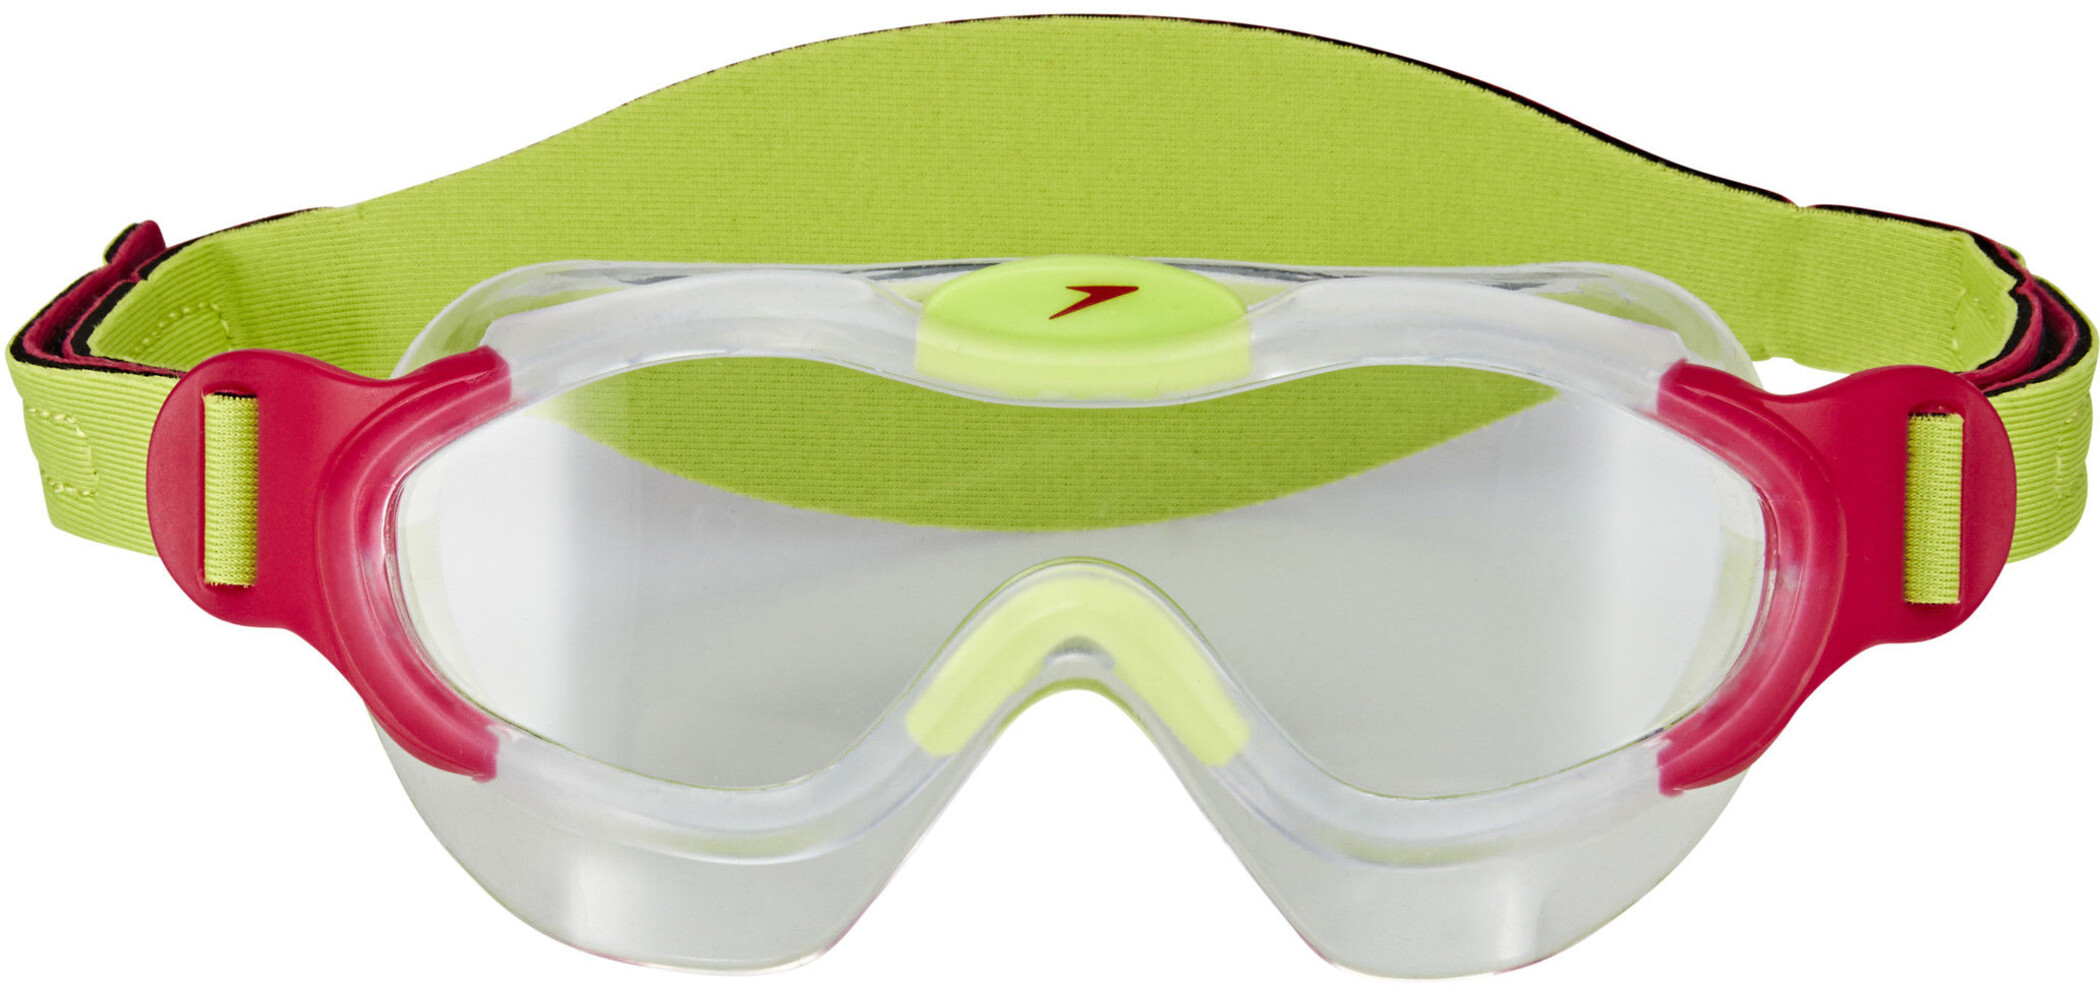 075fbd93f21a speedo Biofuse Sea Squad Goggle Children green transparent at ...